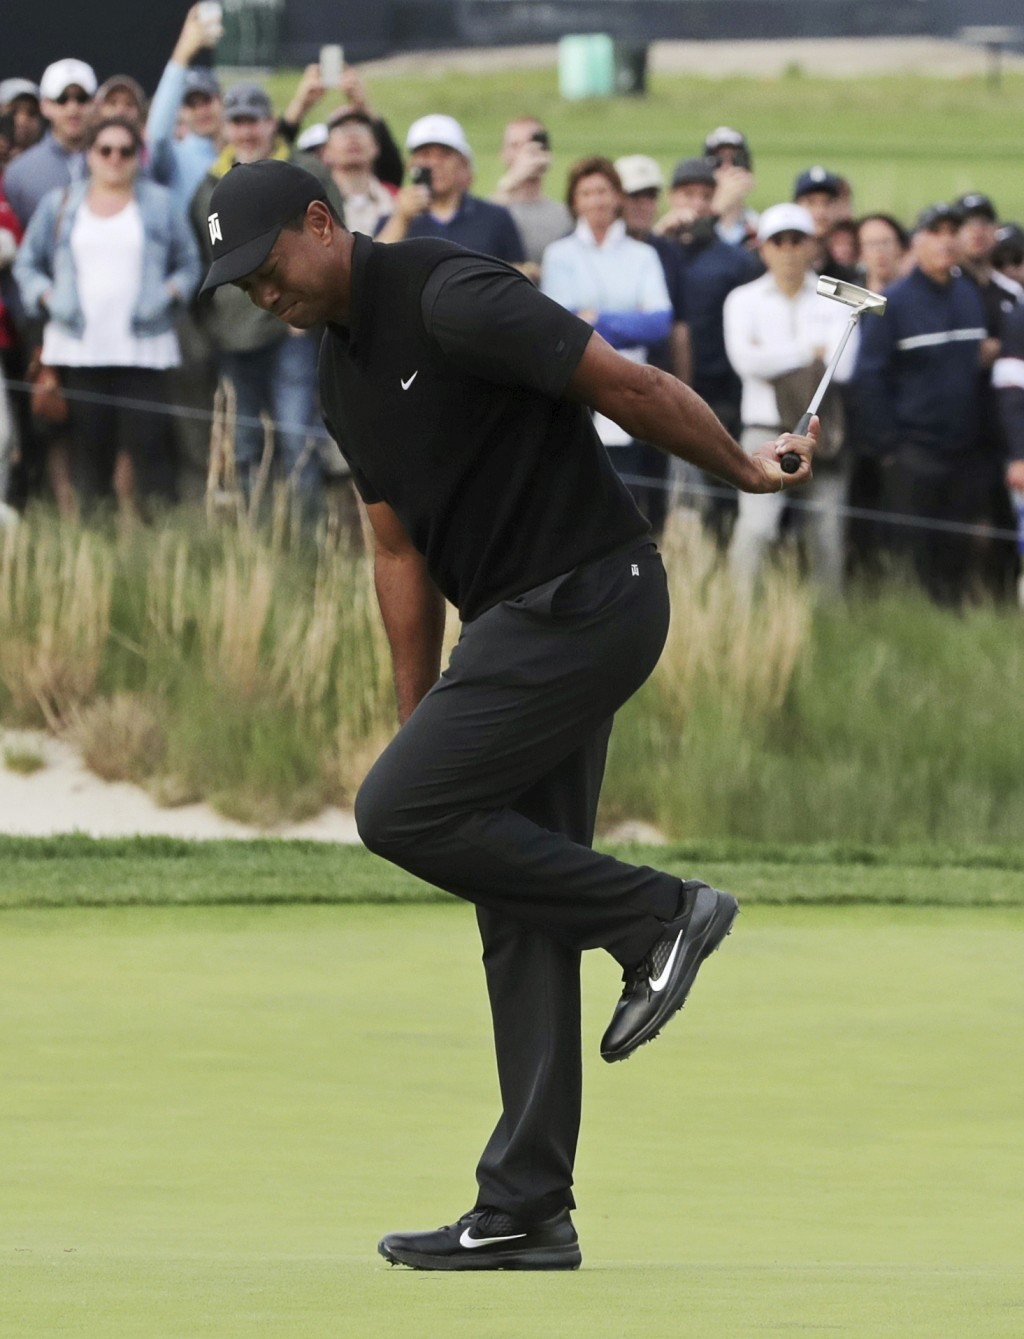 Tiger Woods reacts after missing a putt for birdie on the 17th green during the second round of the PGA Championship golf tournament, Friday, May 17,